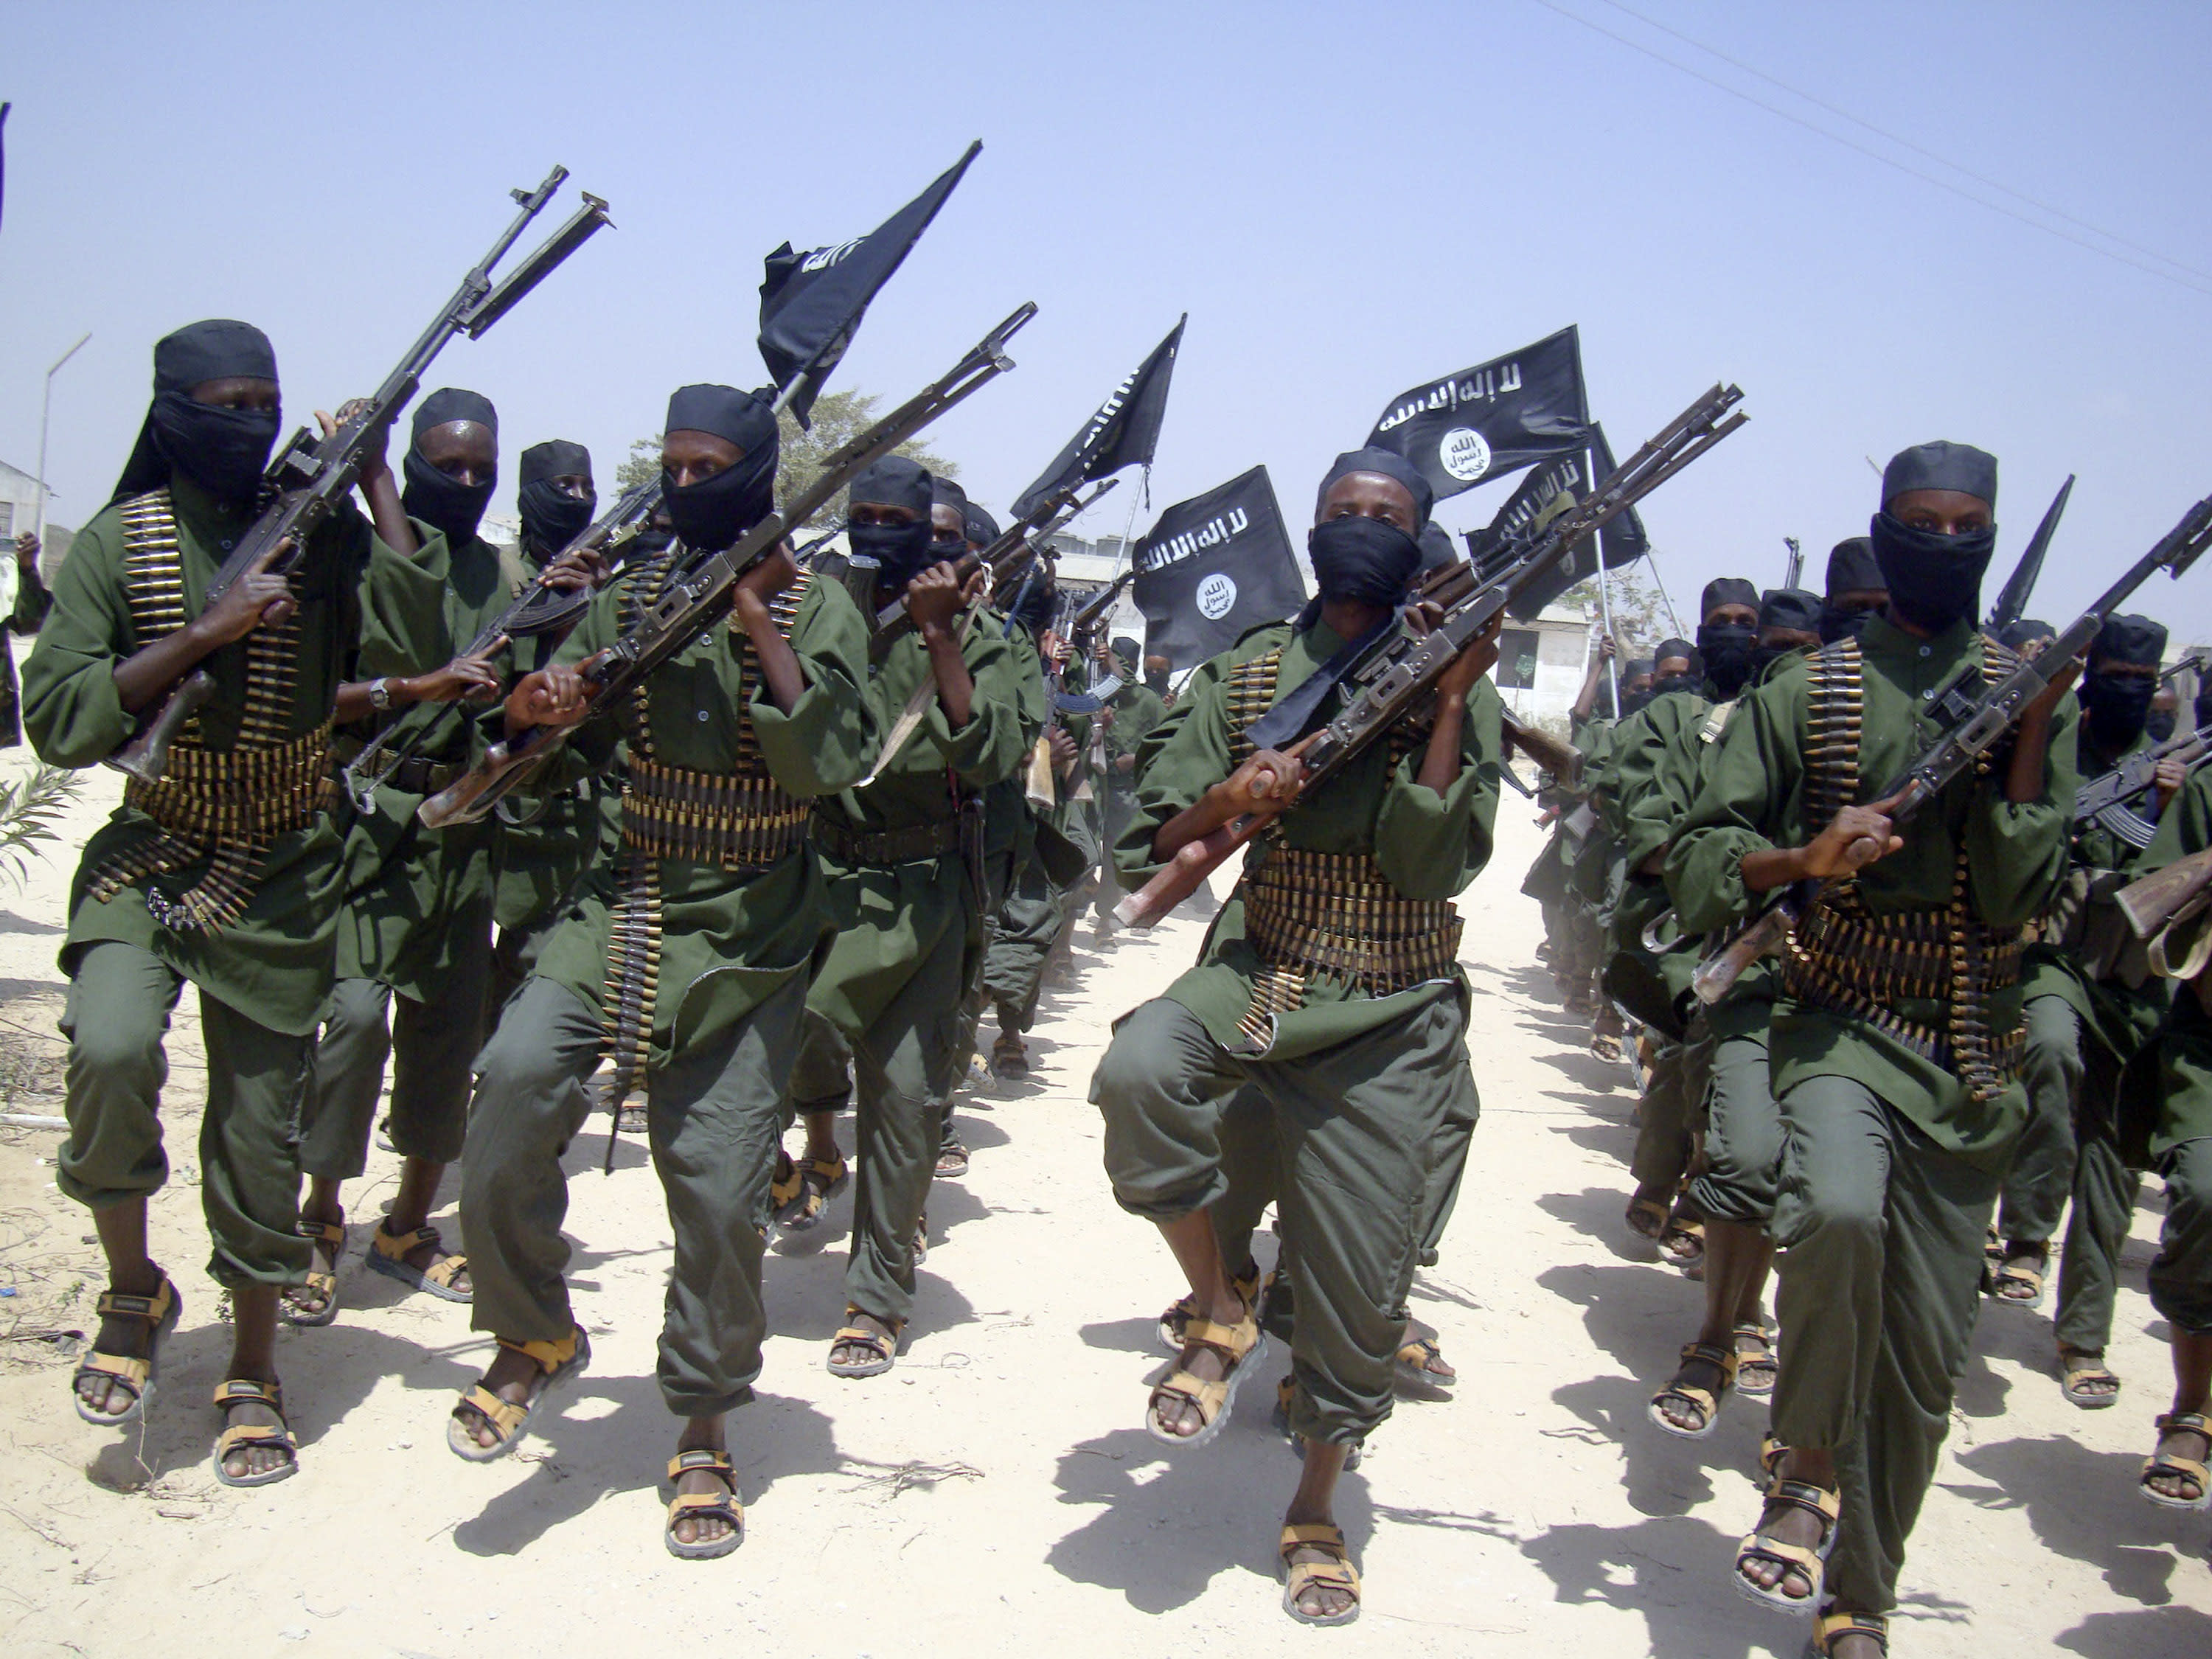 FILE - In this Thursday, Feb. 17, 2011 file photo, al-Shabab fighters march with their weapons during military exercises on the outskirts of Mogadishu, Somalia. Foreign military forces carried out a pre-dawn strike Saturday, Oct. 5, 2013 against foreign fighters in the same southern Somalia village where U.S. Navy SEALS four years ago killed a most-wanted al-Qaida operative, officials said. (AP Photo/Mohamed Sheikh Nor, File)